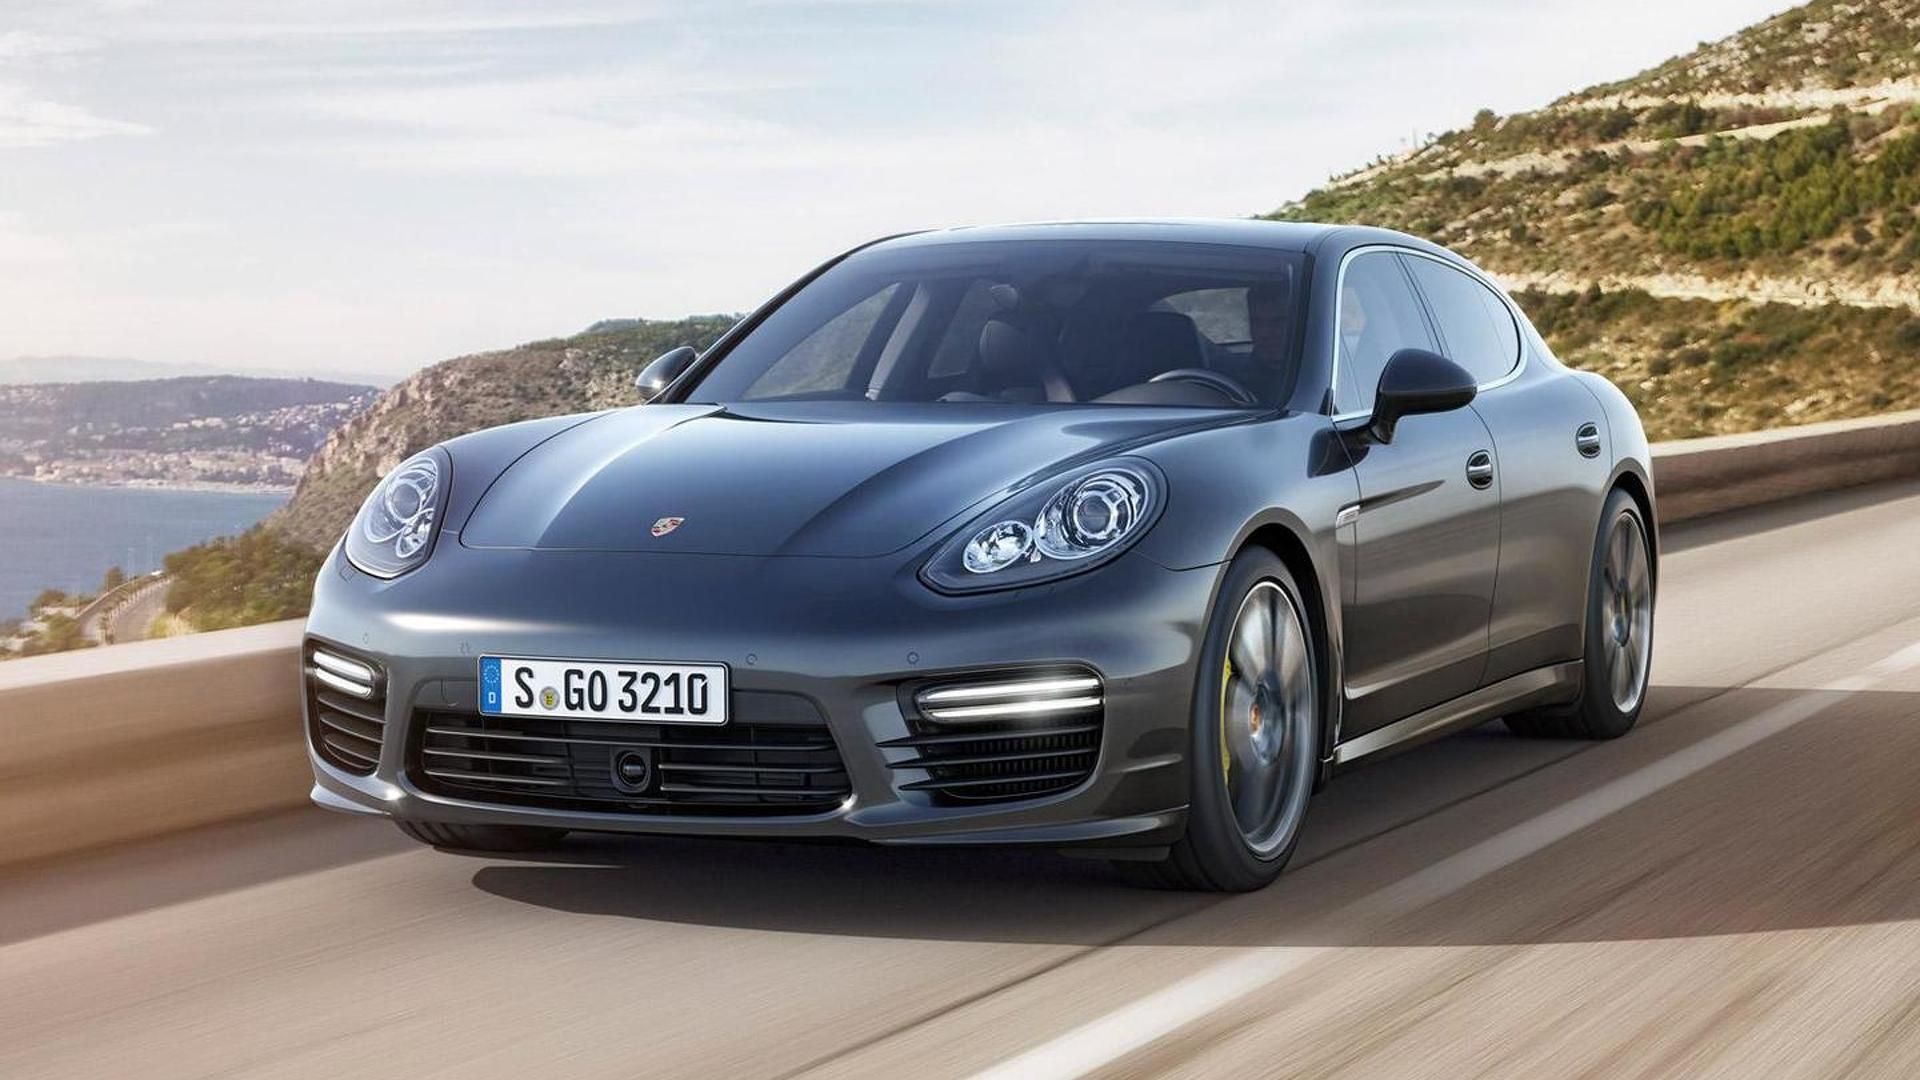 Porsche Exclusive planning an ultra-luxurious Panamera special edition